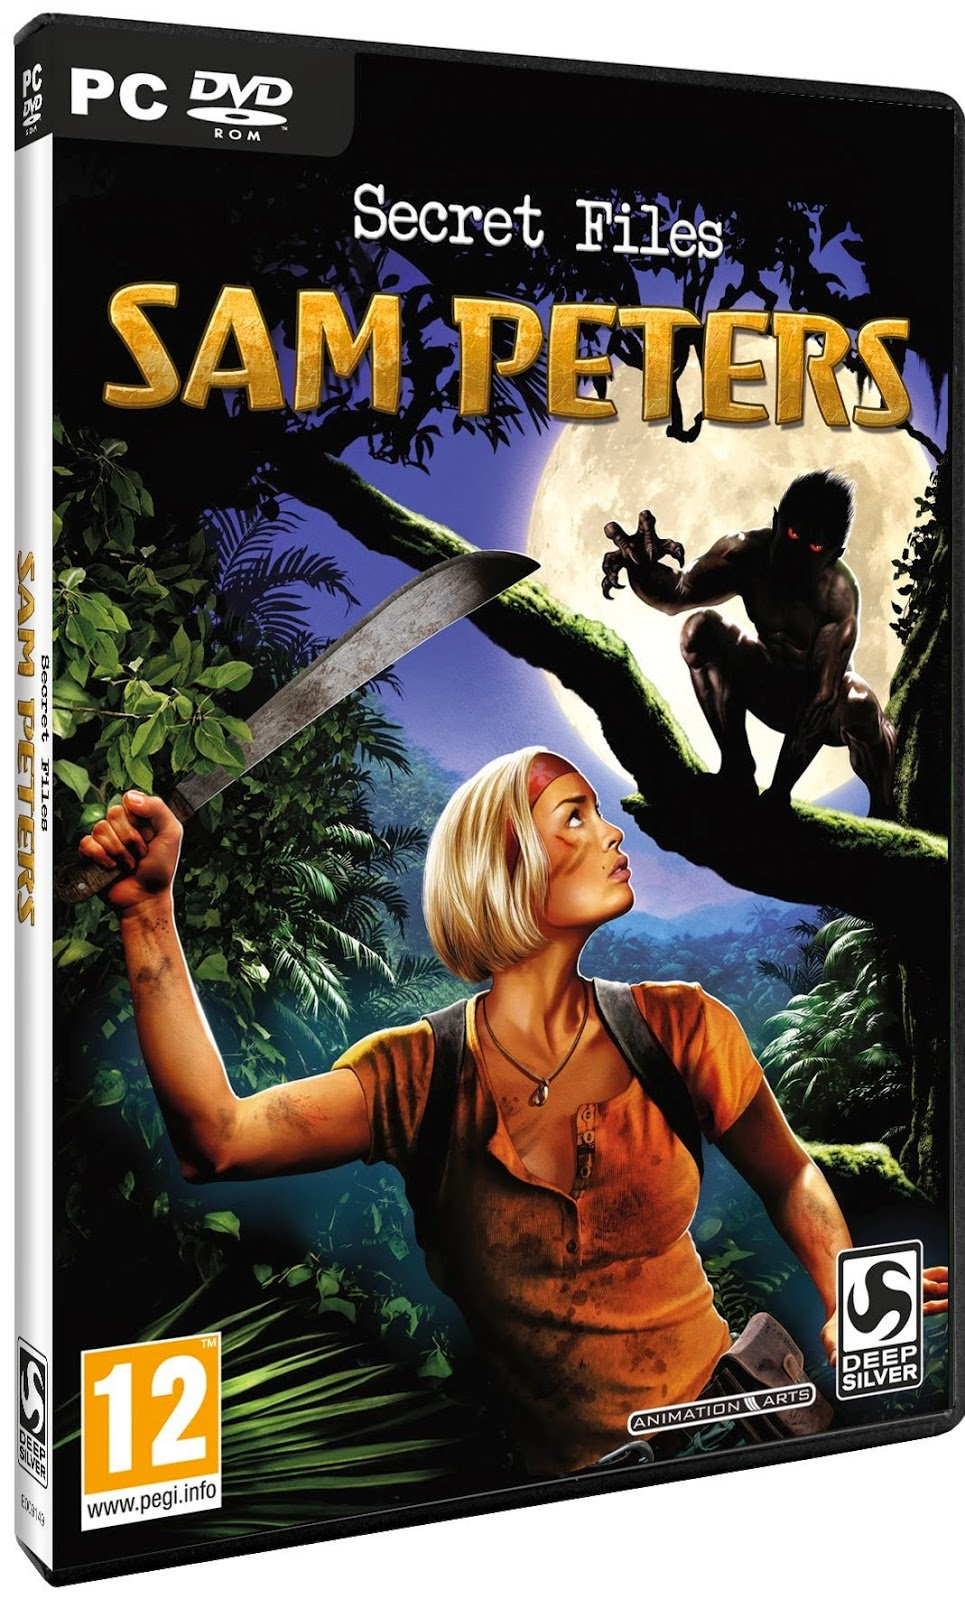 Secret-Files-Sam-Peters-DVD-Cover